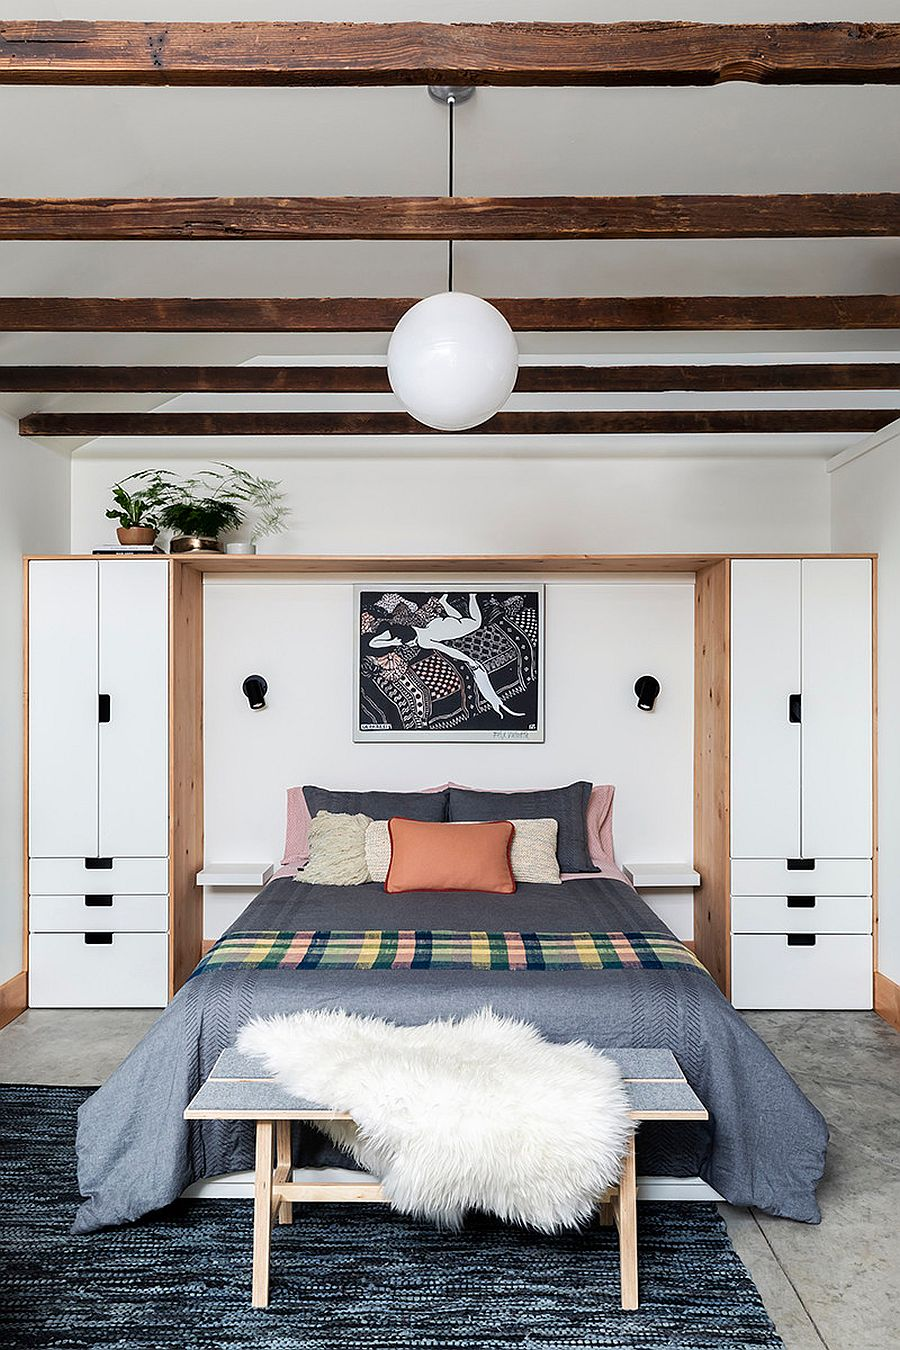 Custom white and wood bedroom wardrobe unit saves space in the small interior